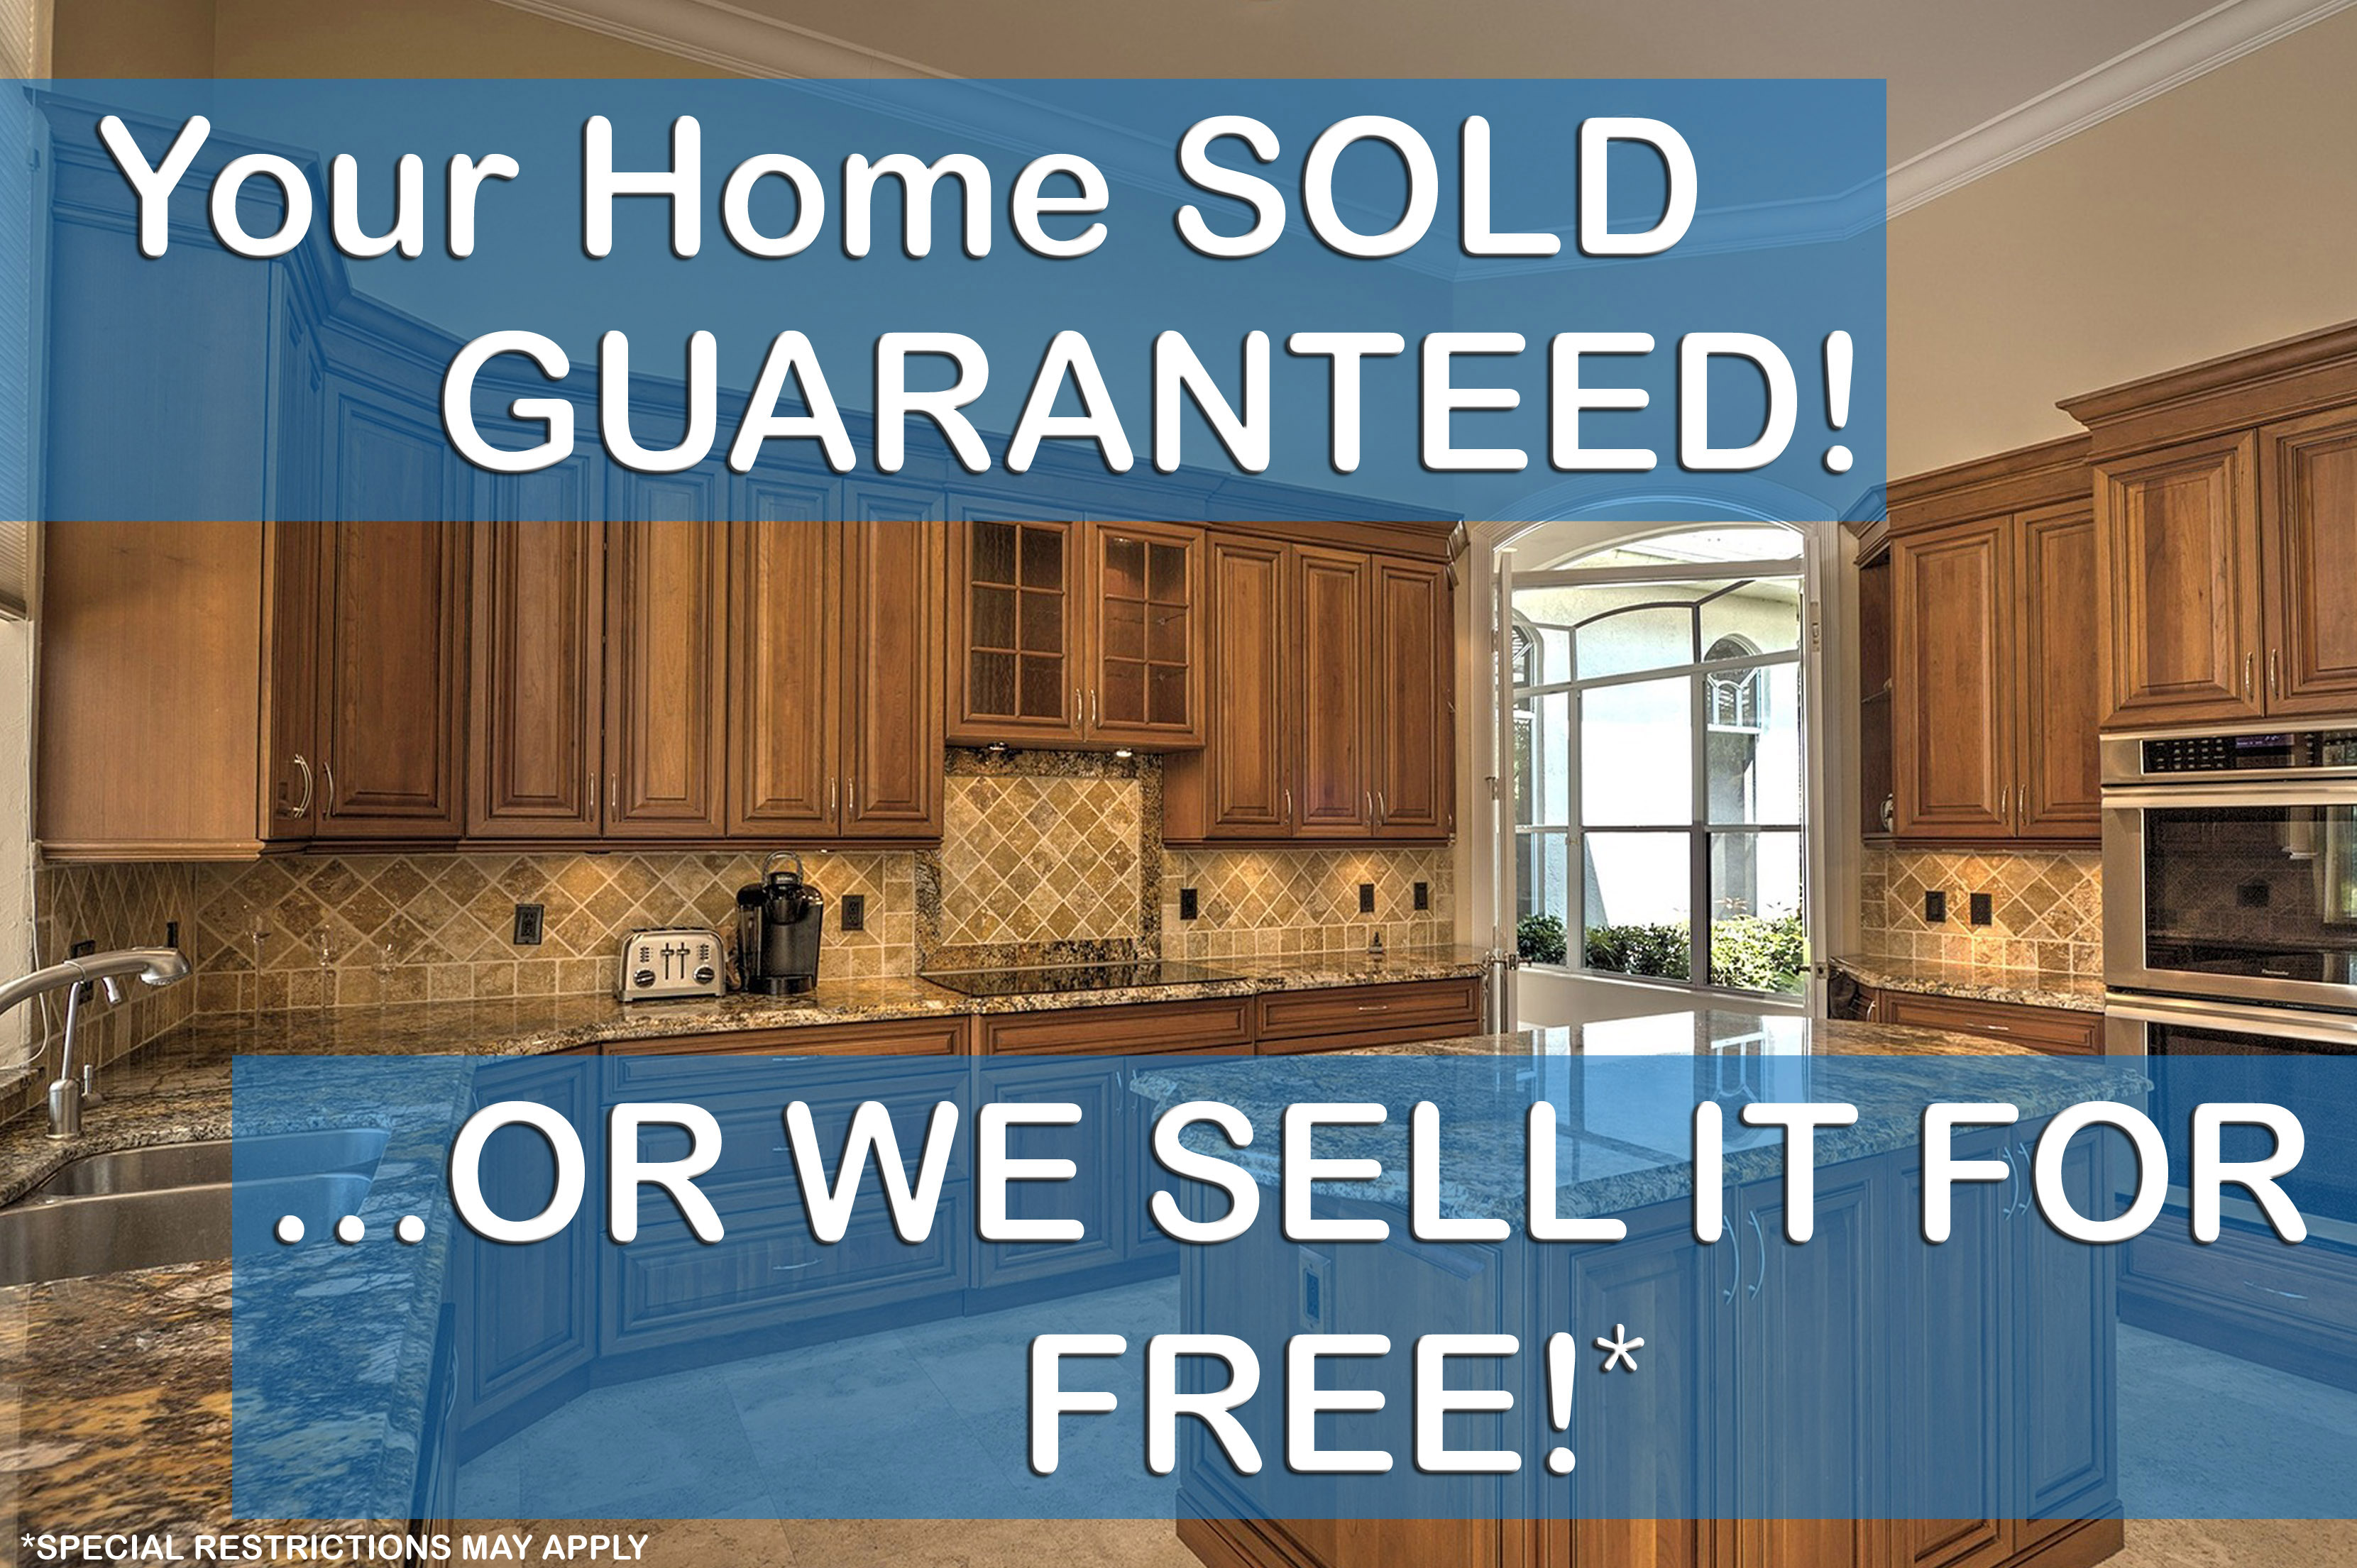 Your Home SOLD GUARANTEED! Or WE SELL IT FREE!*